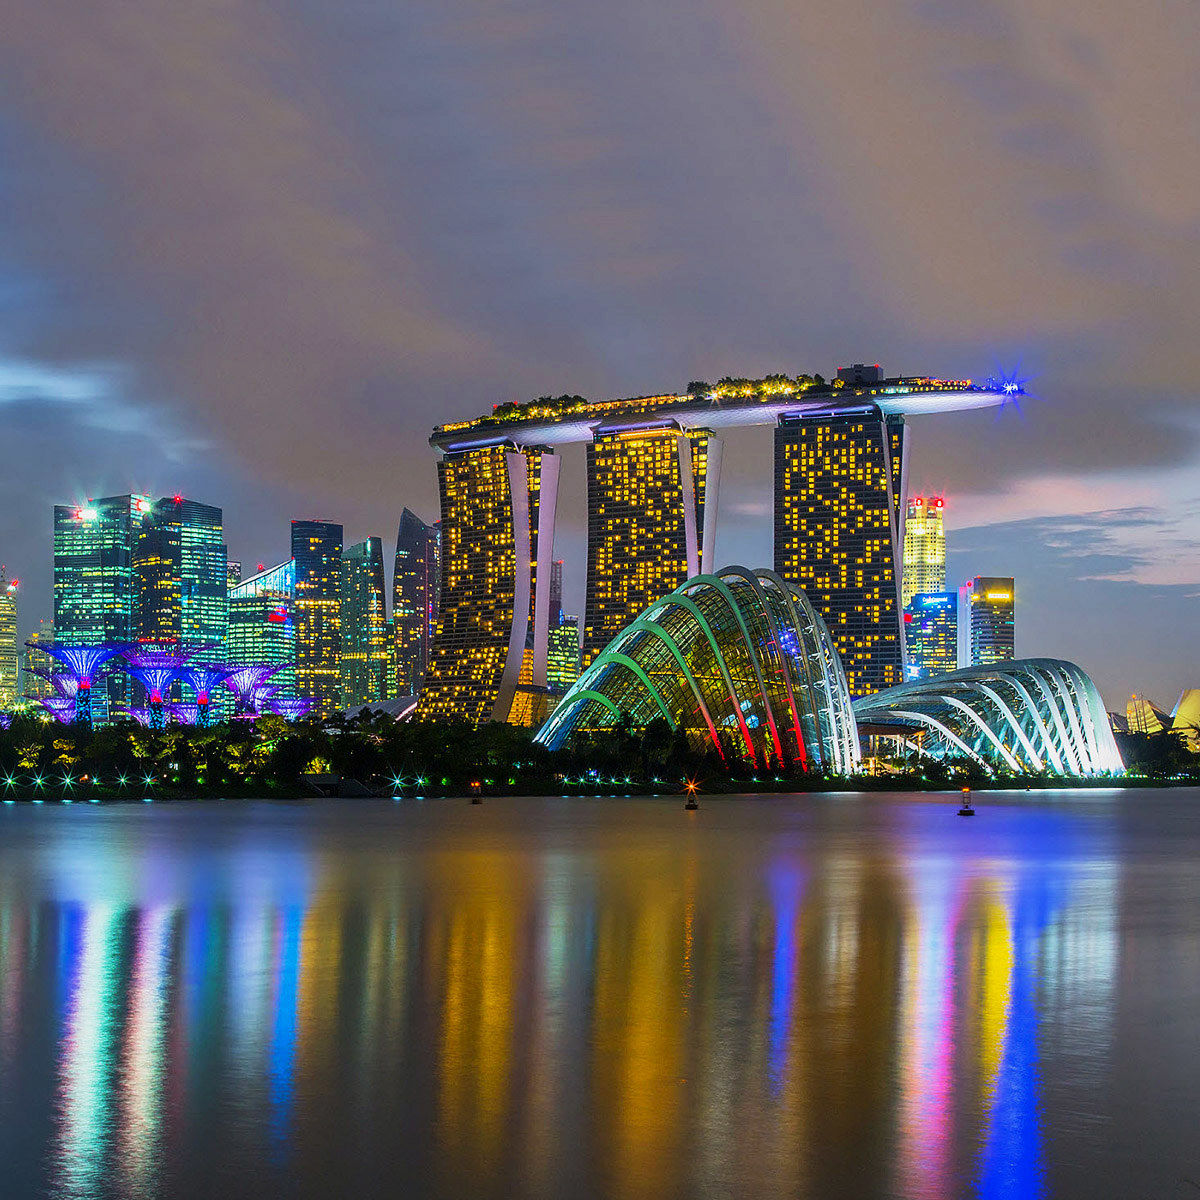 Singapore Cloud Forest Flower Dome & Marina...